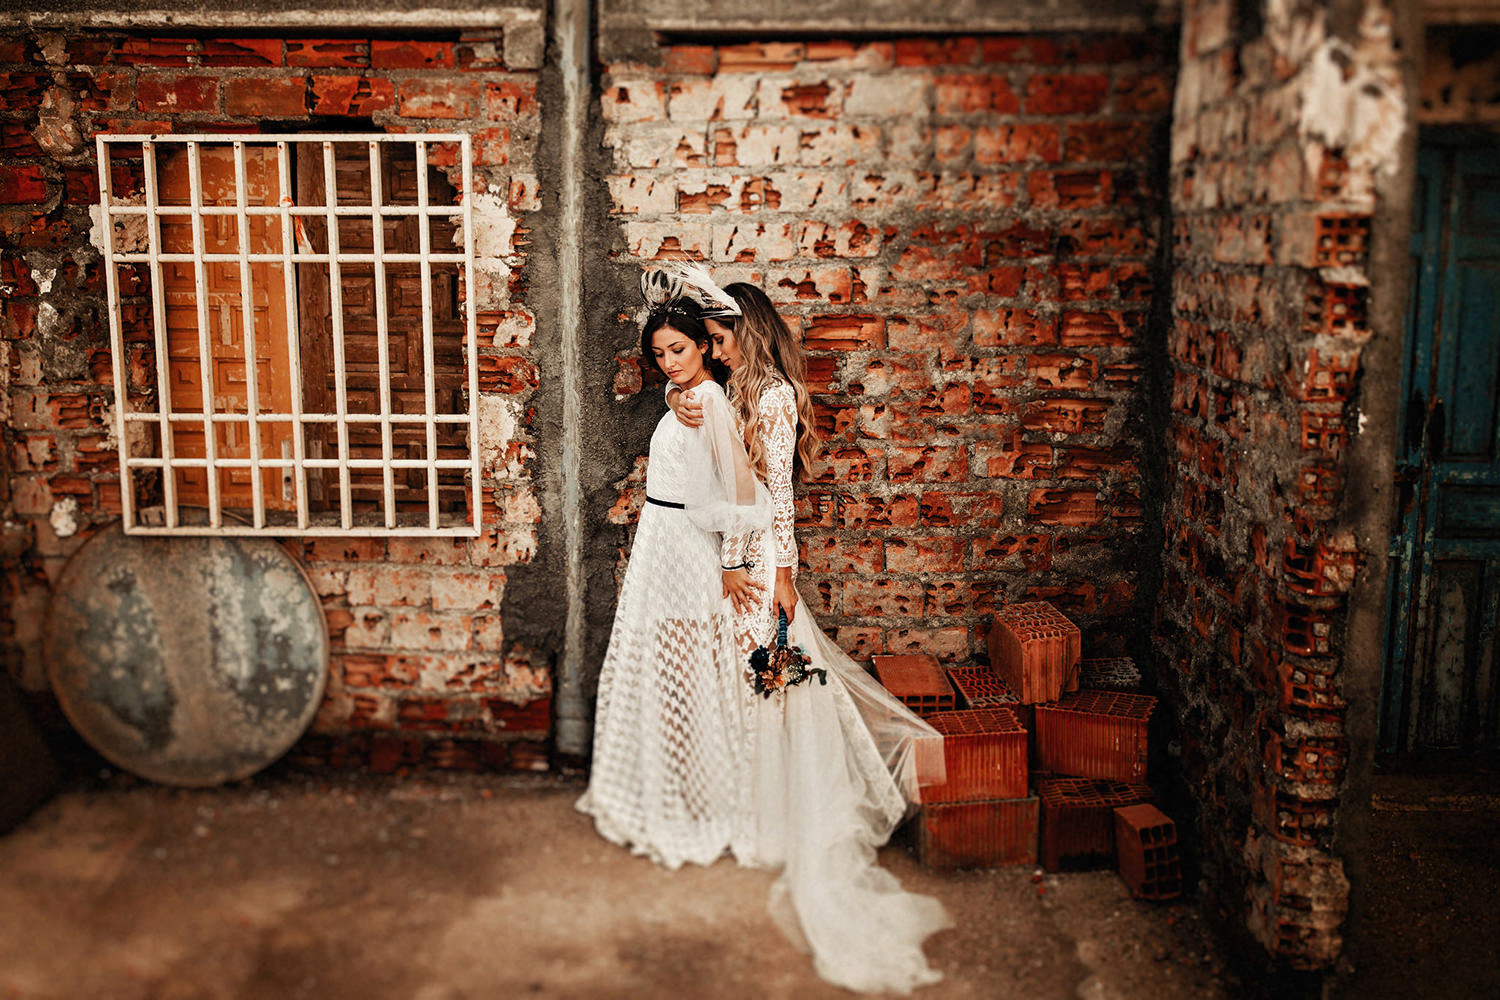 A wedding couple is holding each other and is standing in front of a brick wall, featured at the elopement checklist post.